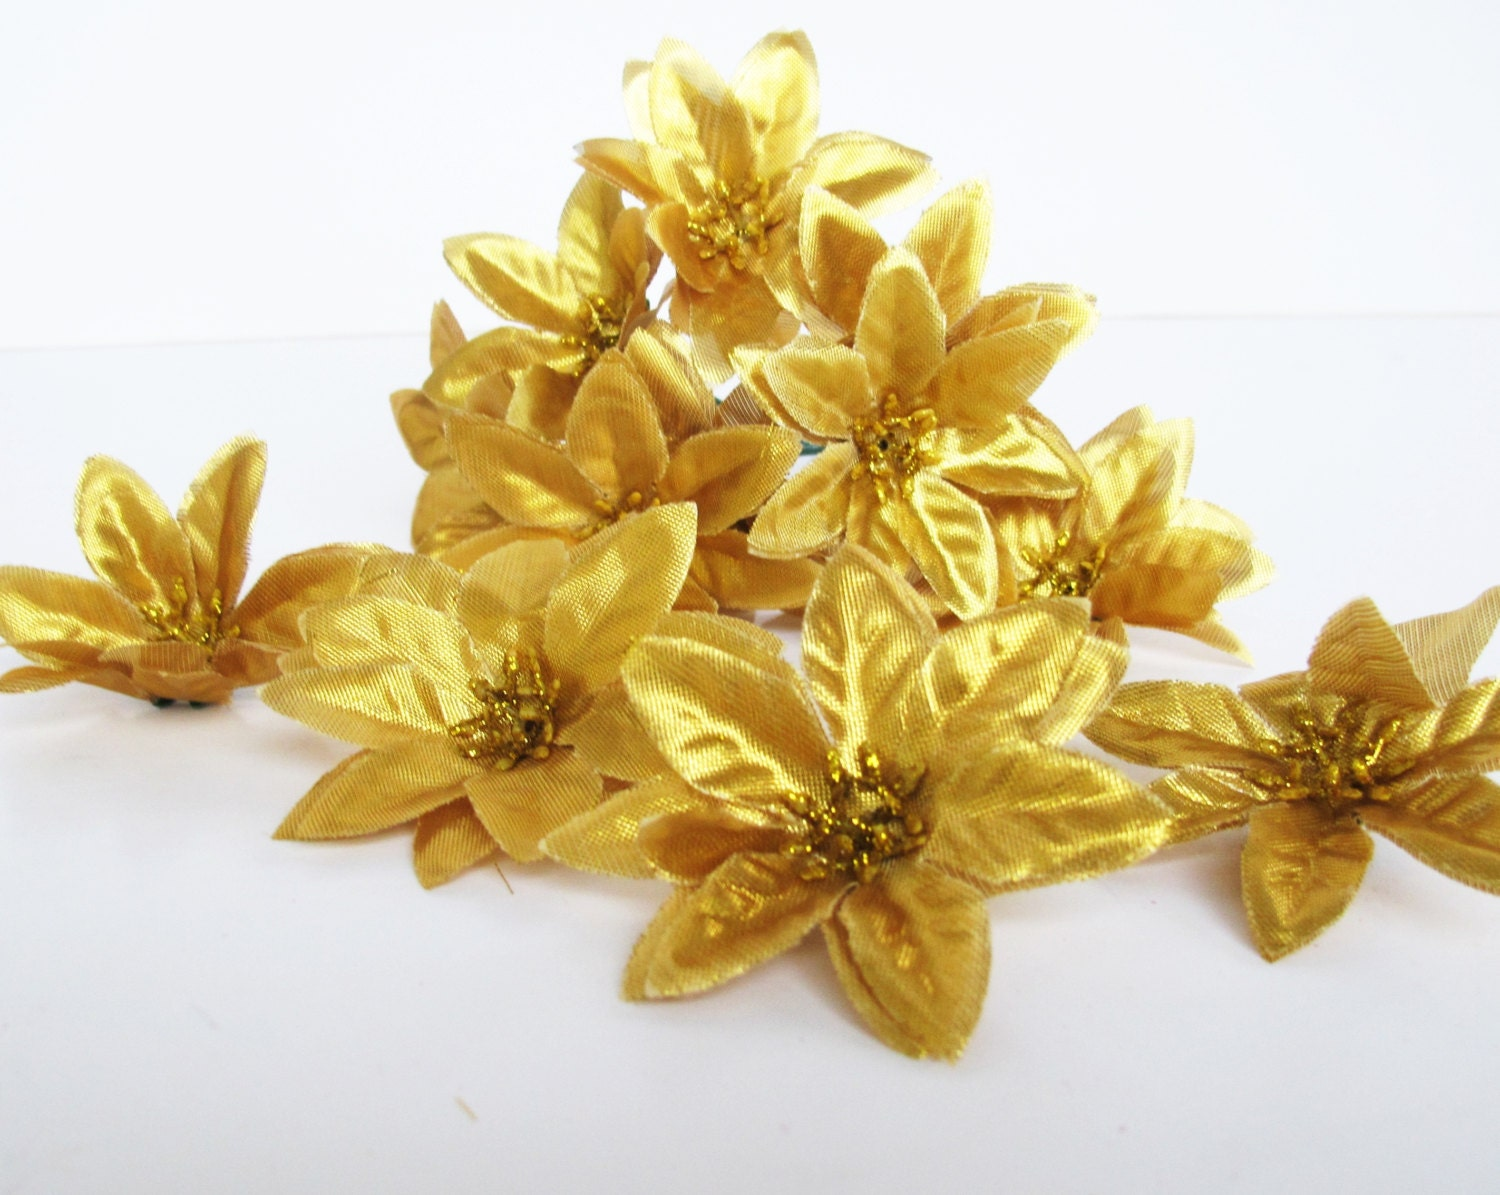 Lot of 80 Mini Gold Color Poinsettias Artificial Flowers